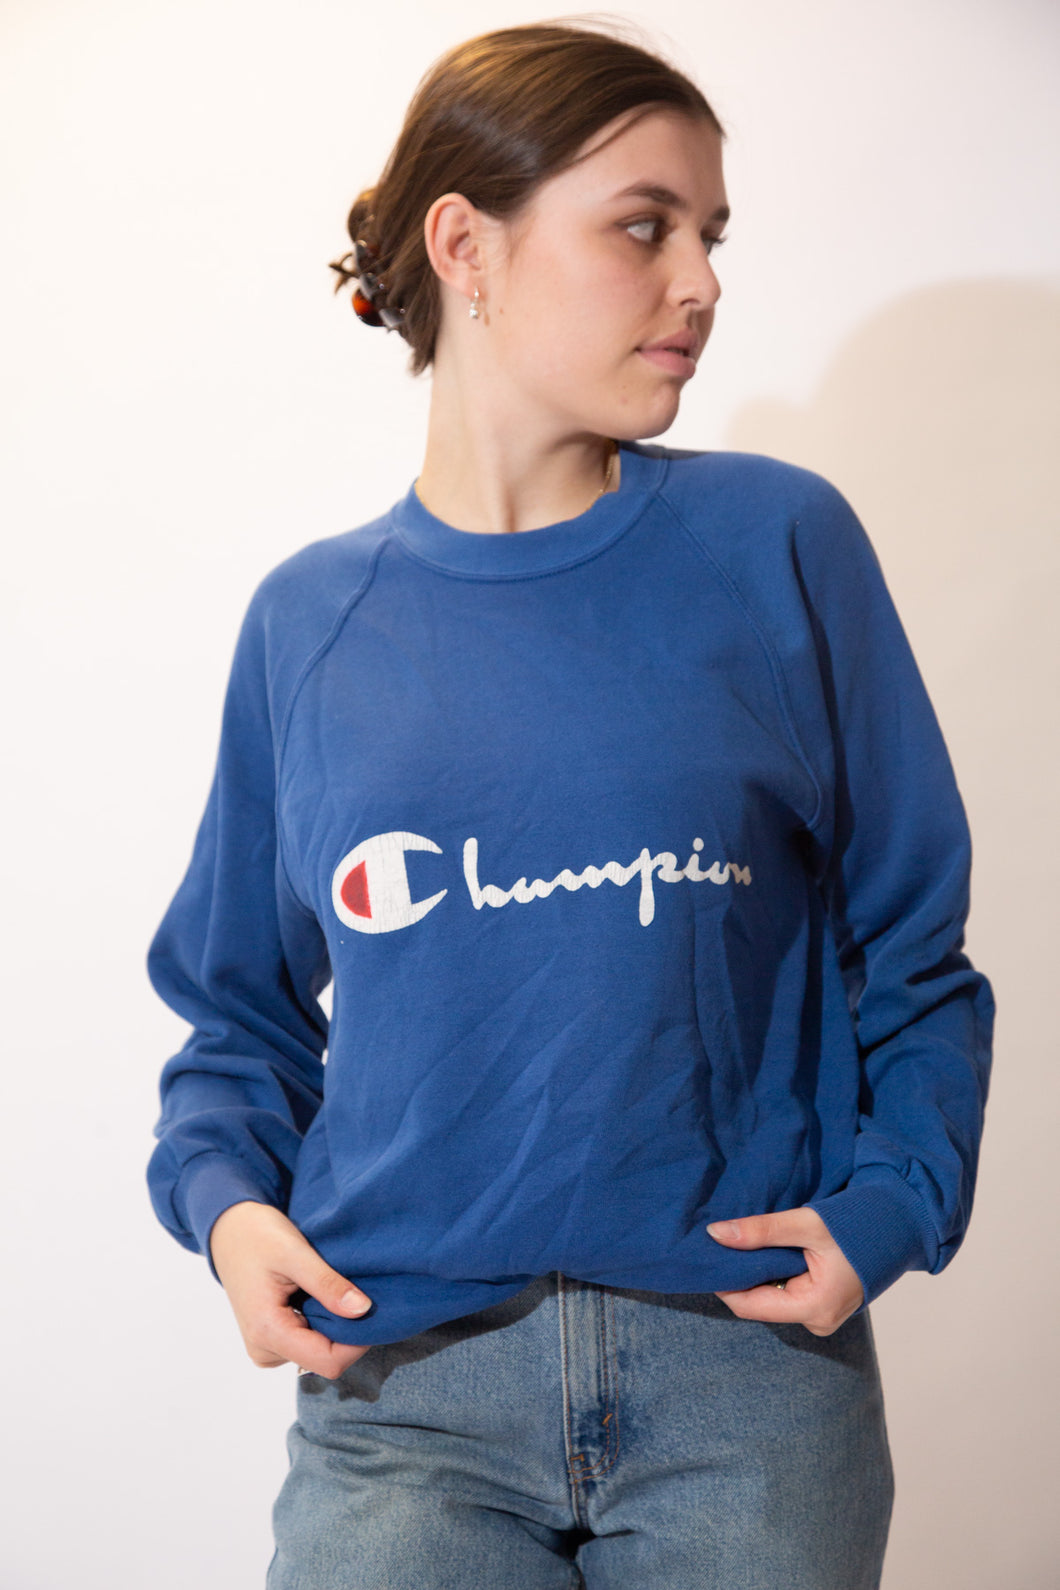 Blue in colour, this jumper has a white 'Champion' spell-out across the front with the brand's logo as the 'C'.